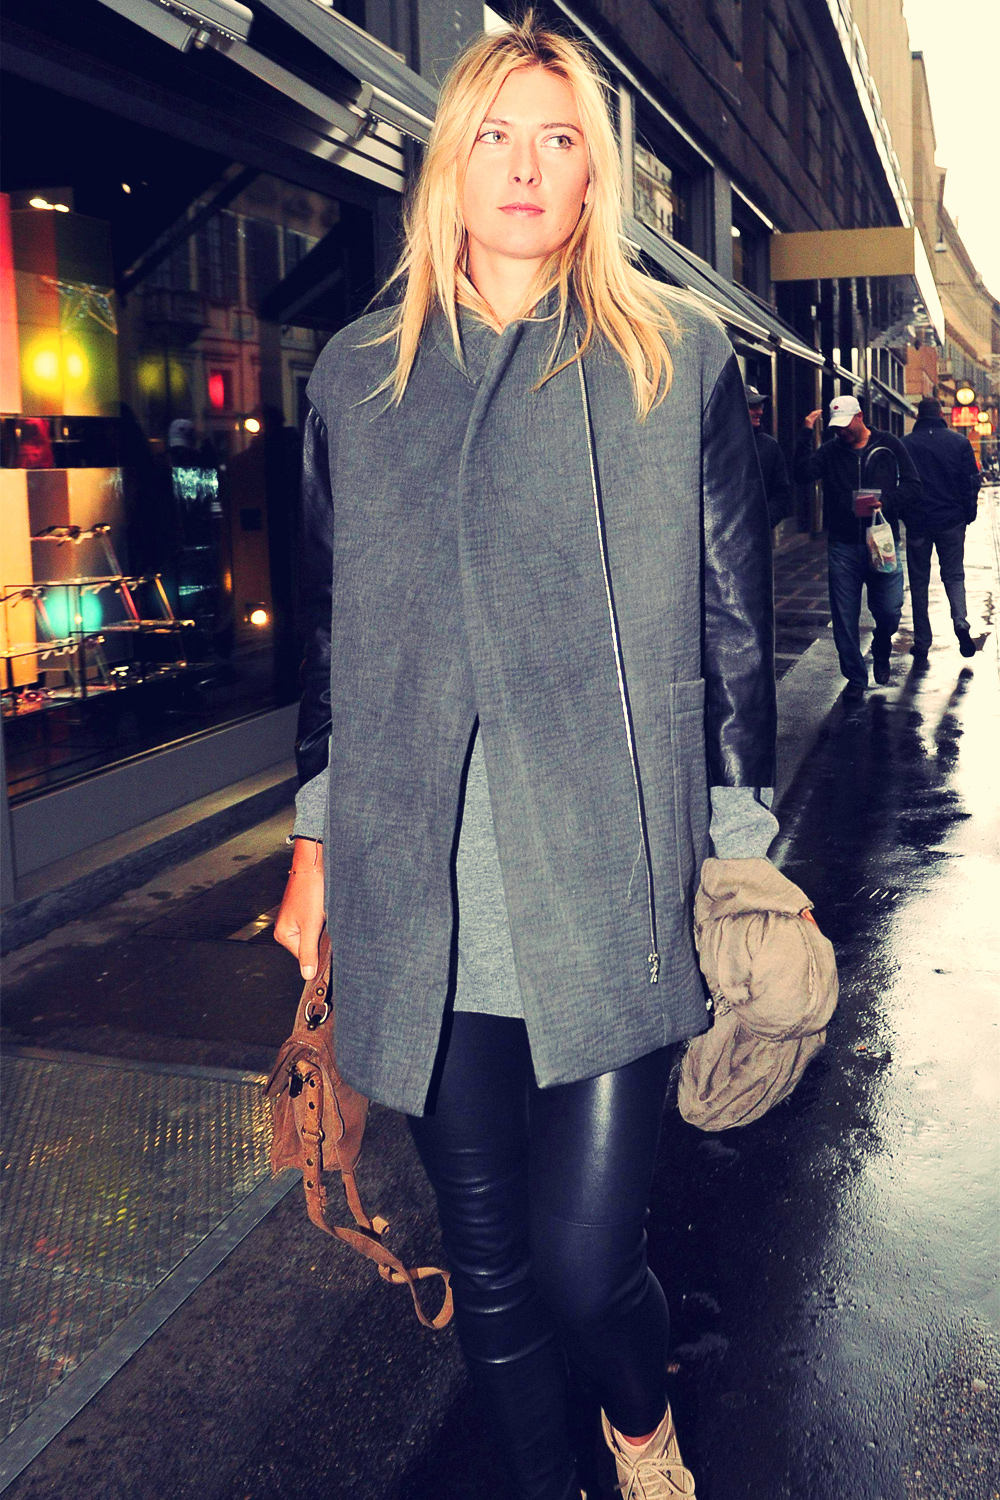 Maria Sharapova shopping at Armani Boutique